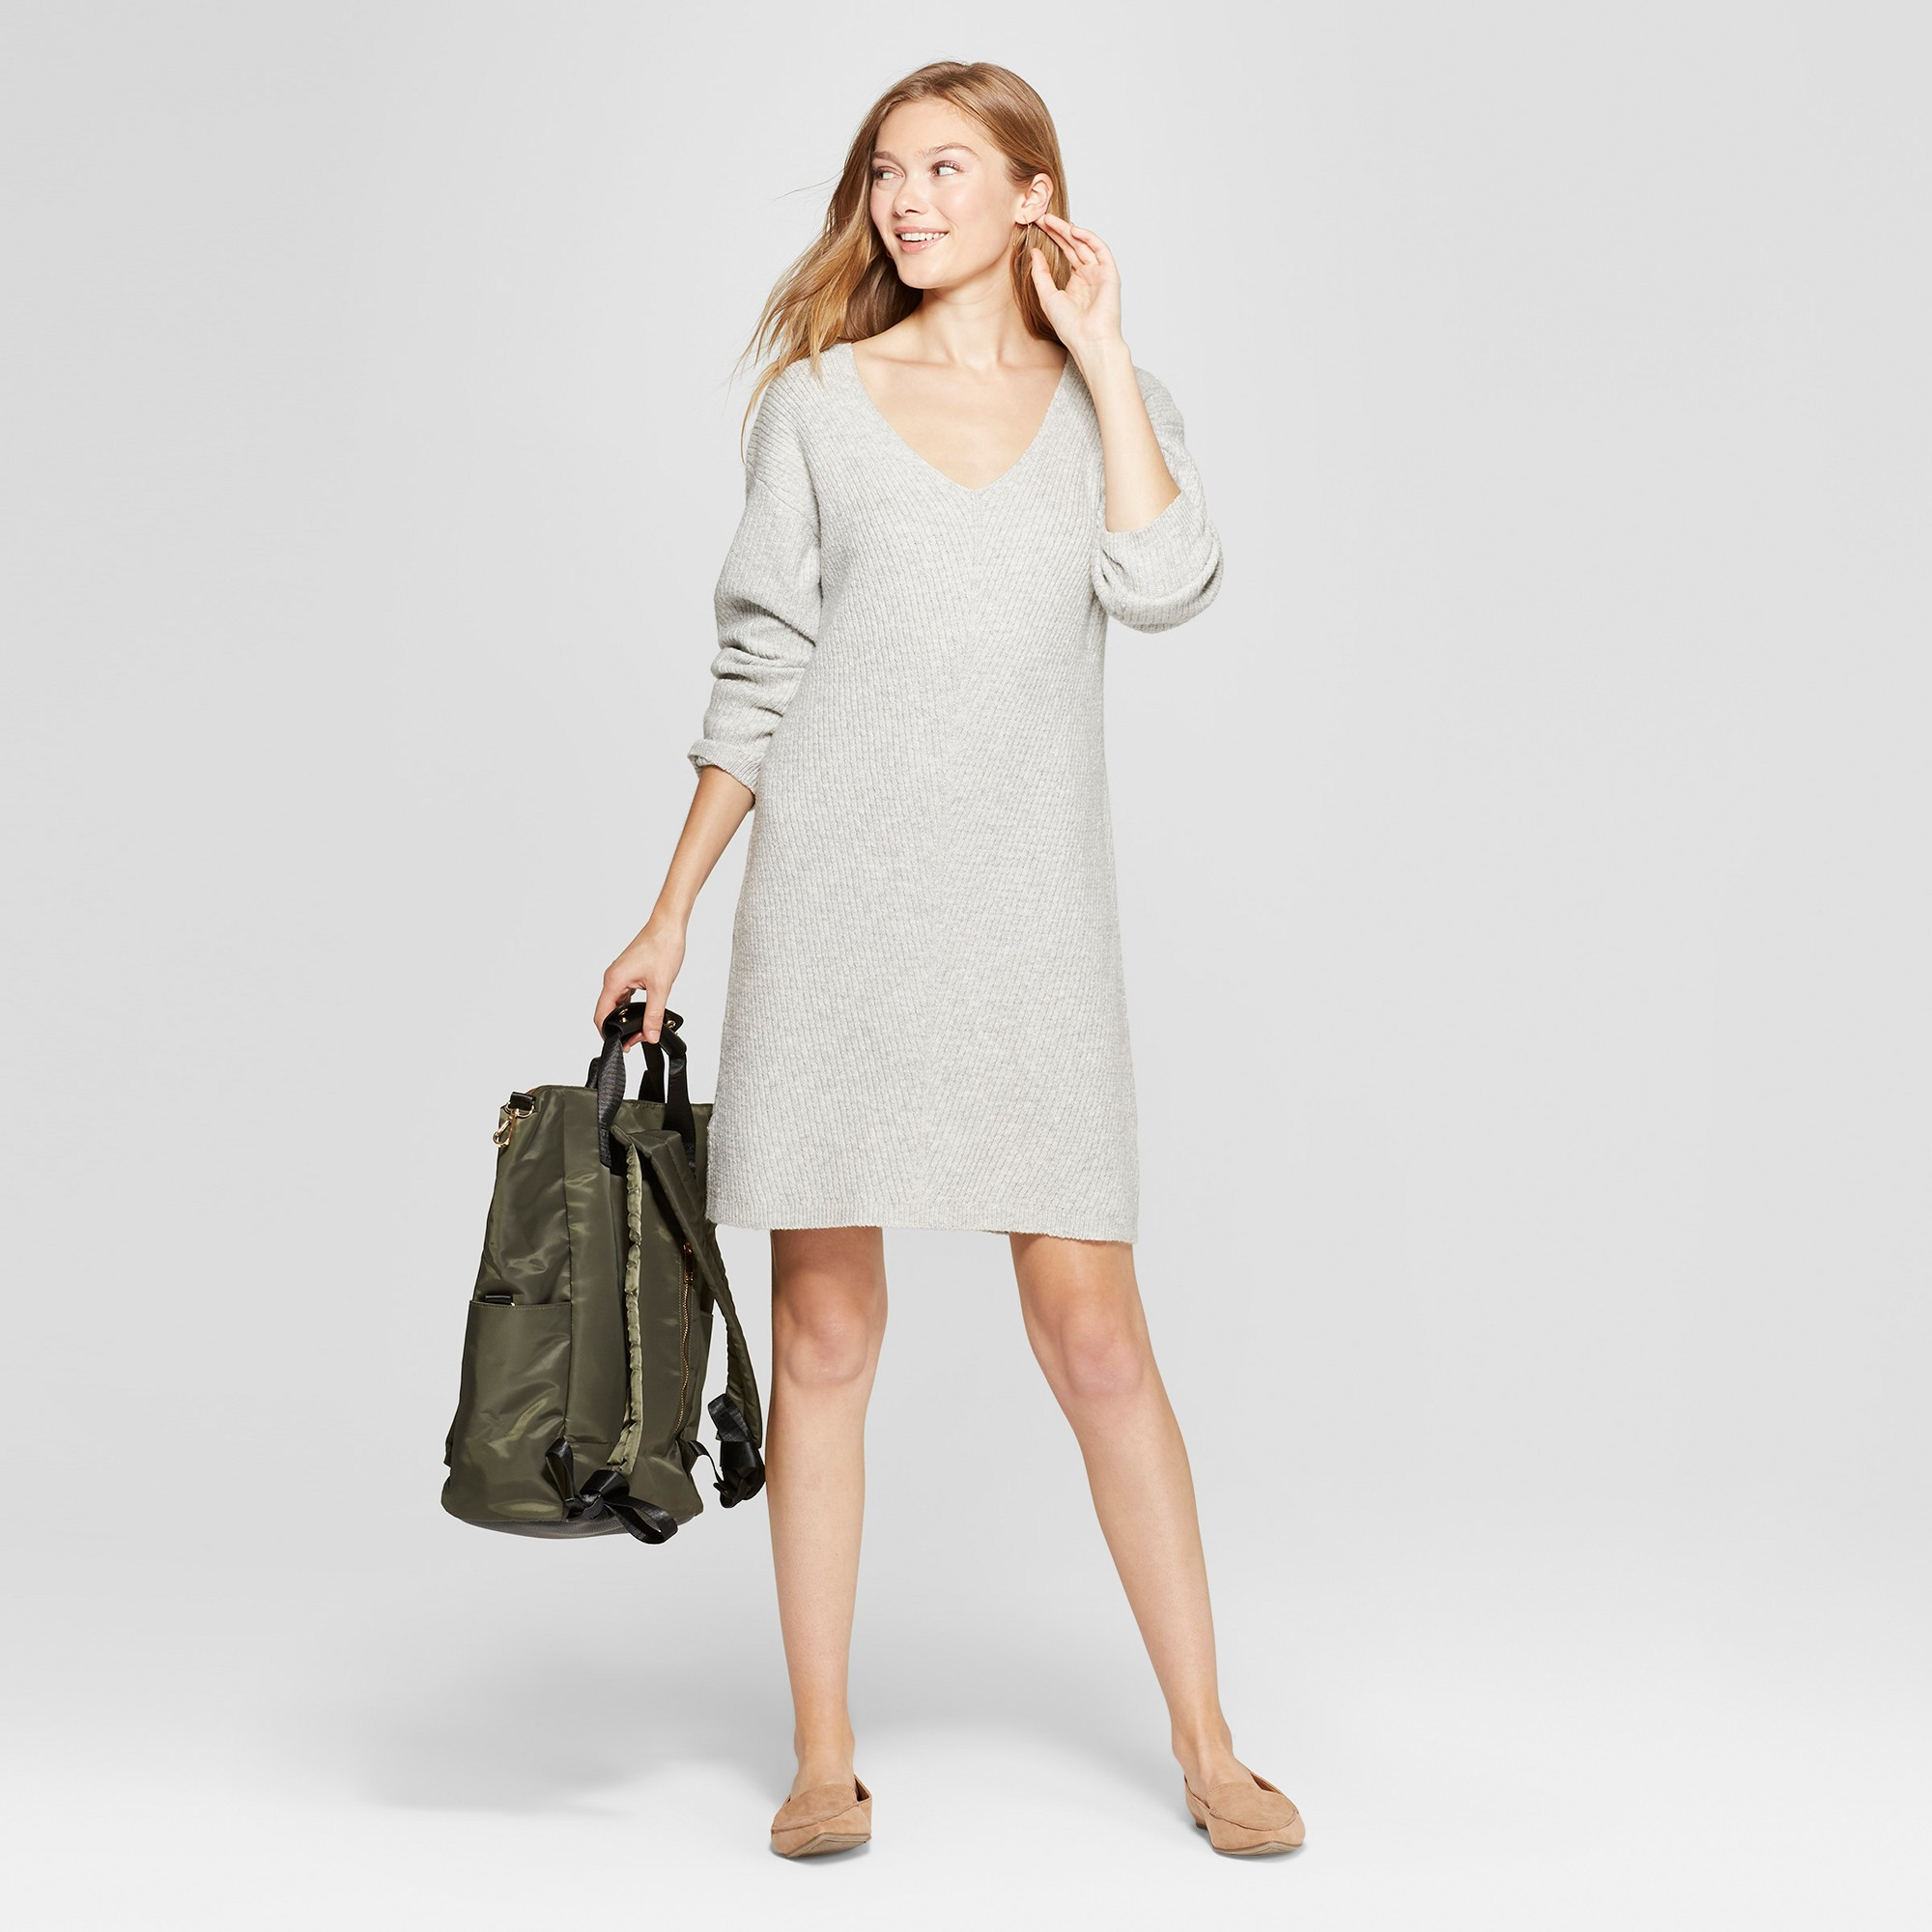 b80979aa06c8 Women's Long Sleeve Sweater Dress - A New Day Gray Xxl | Products ...